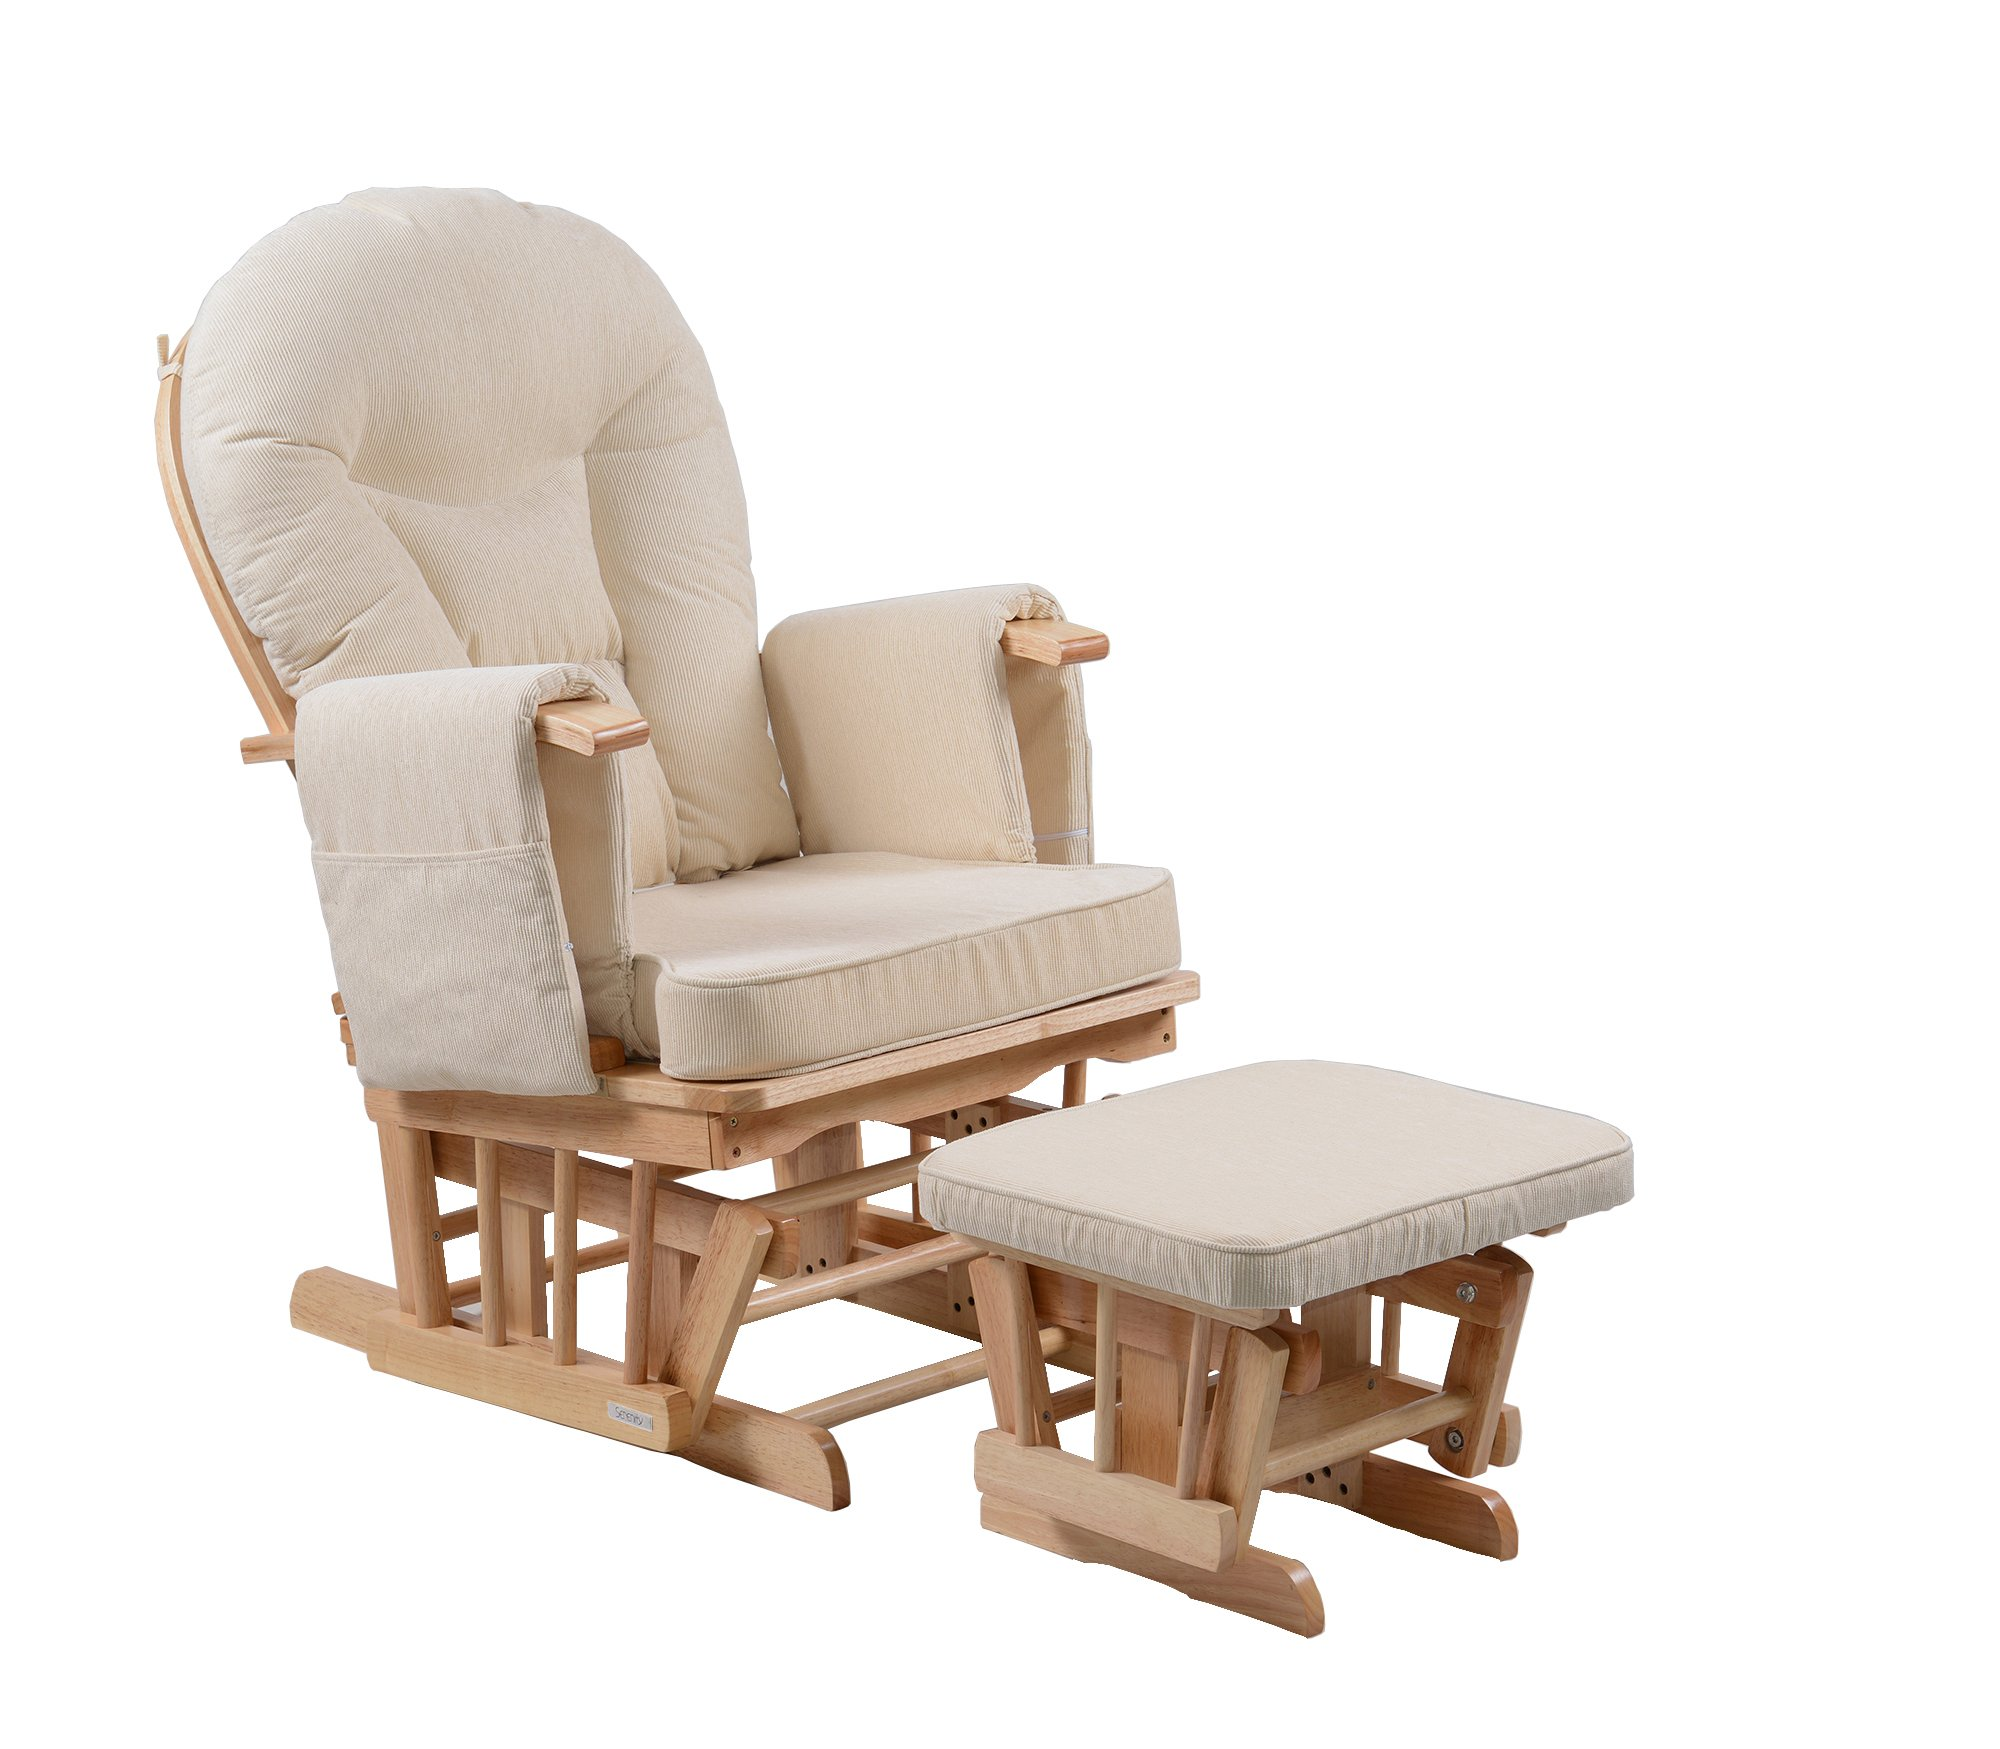 Serenity Nursing Glider Maternity Chair with Footstool … (Natural)